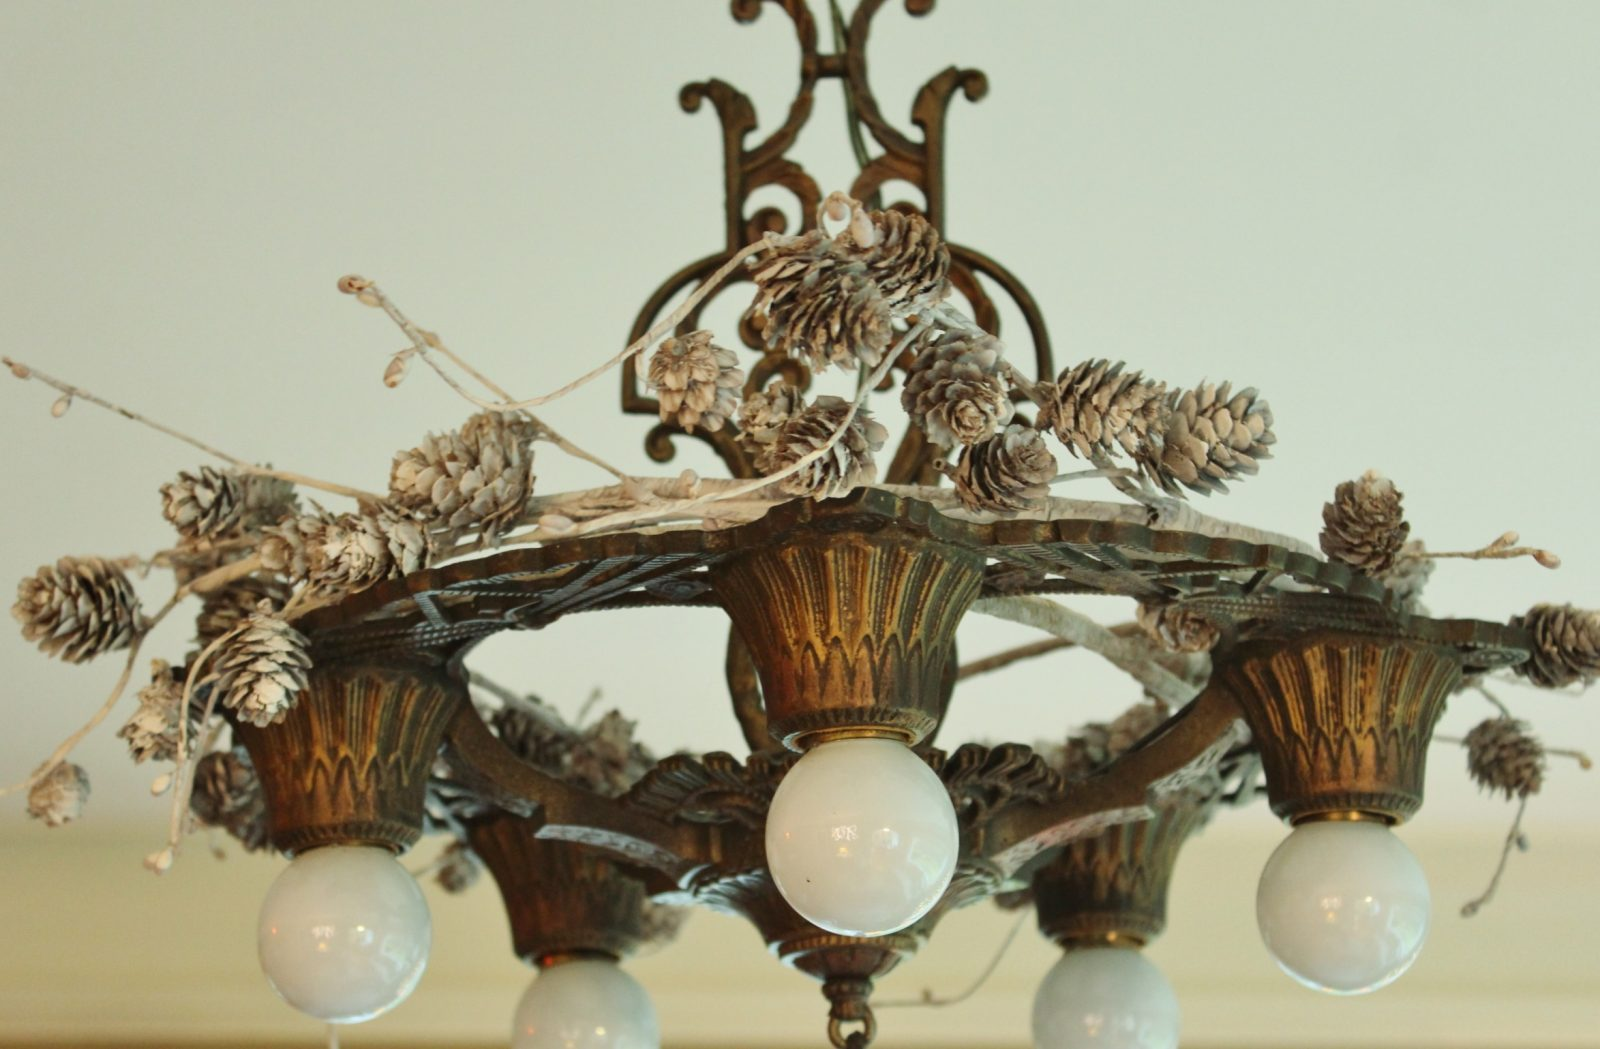 holiday pinecones on a 1920s era chandelier.